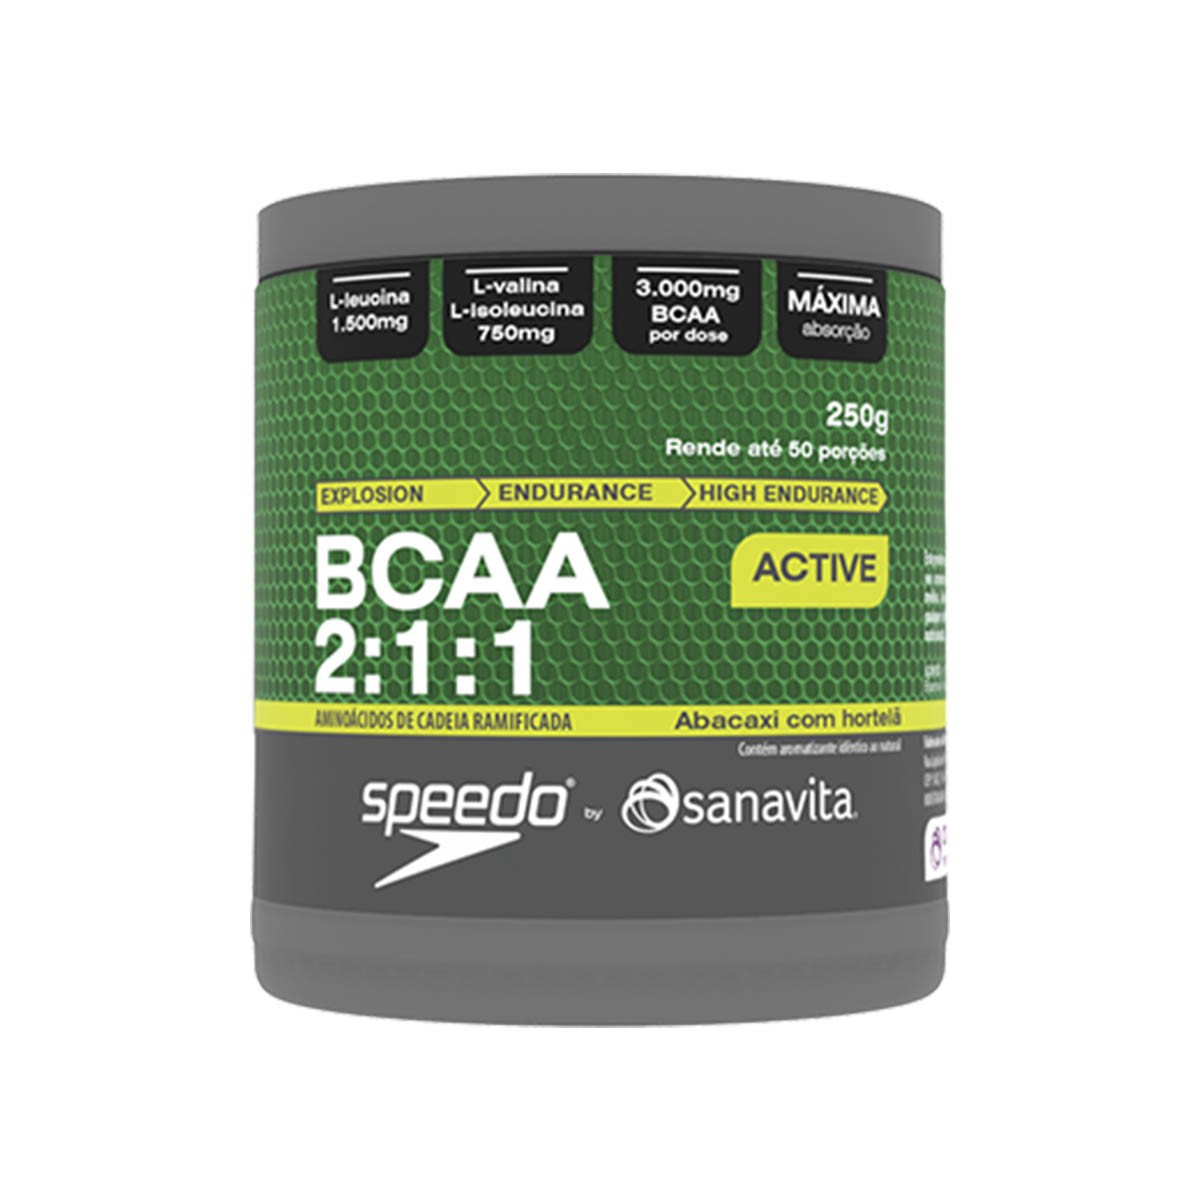 BCAA Speedo 2-1-1 Active